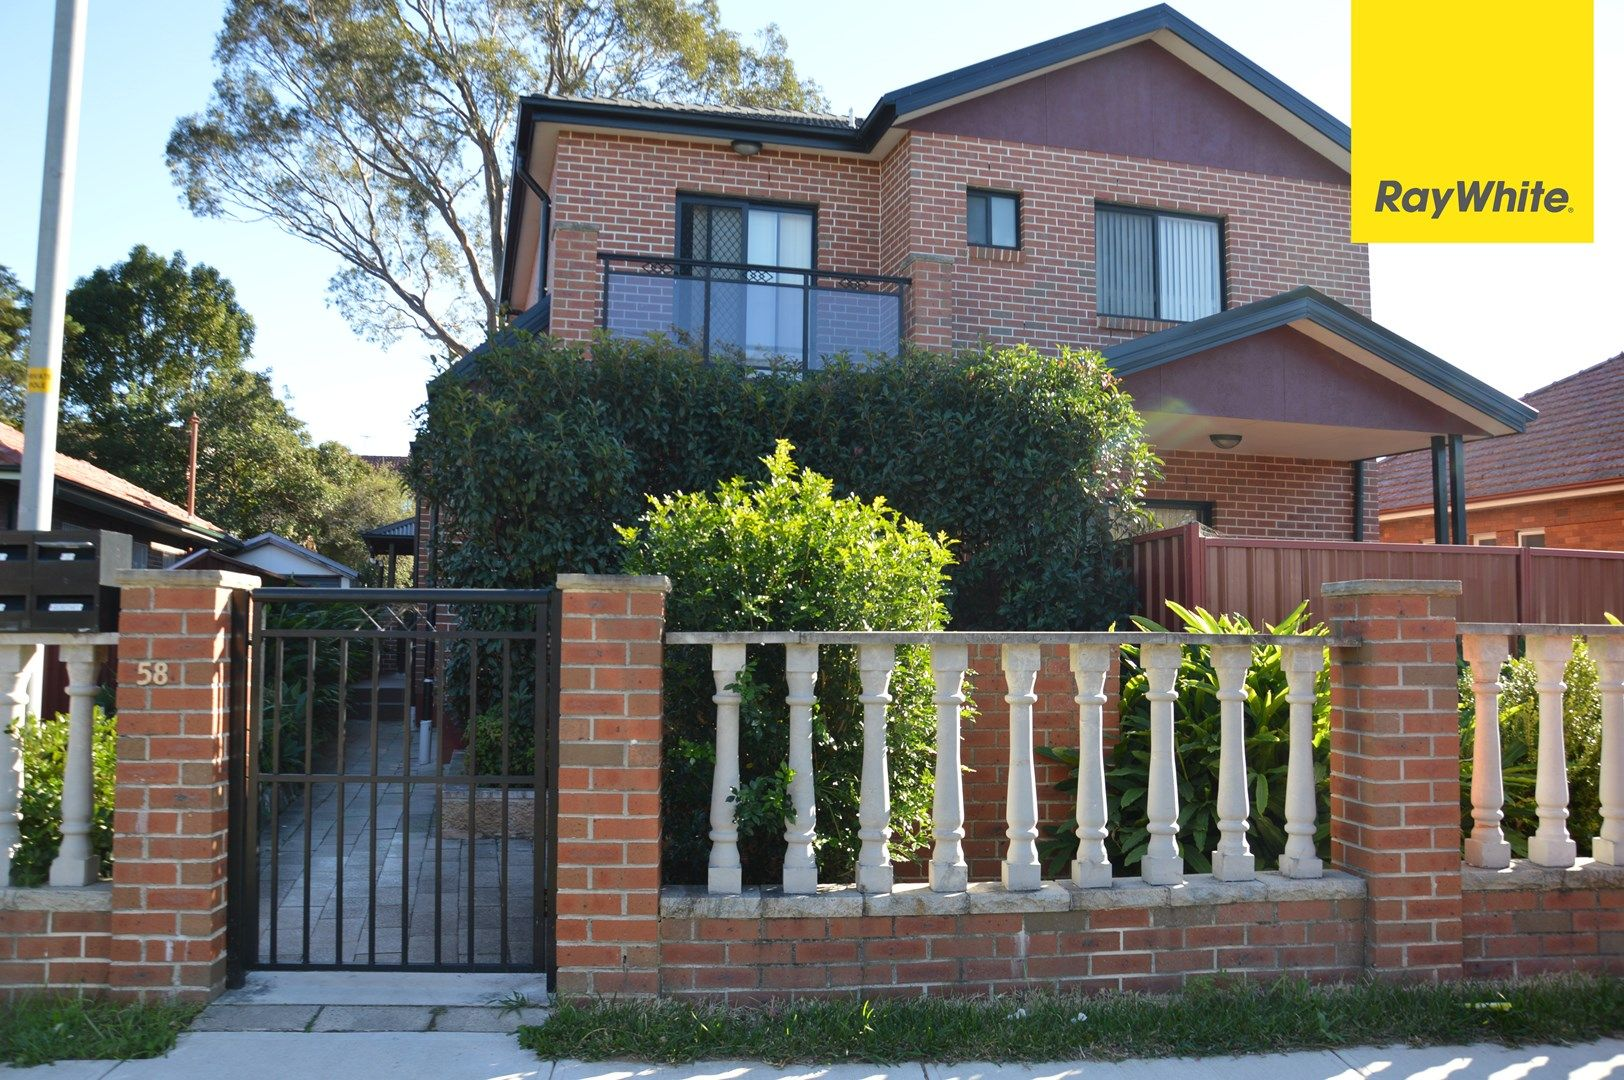 2/58 Vicliffe Ave, Campsie NSW 2194, Image 0